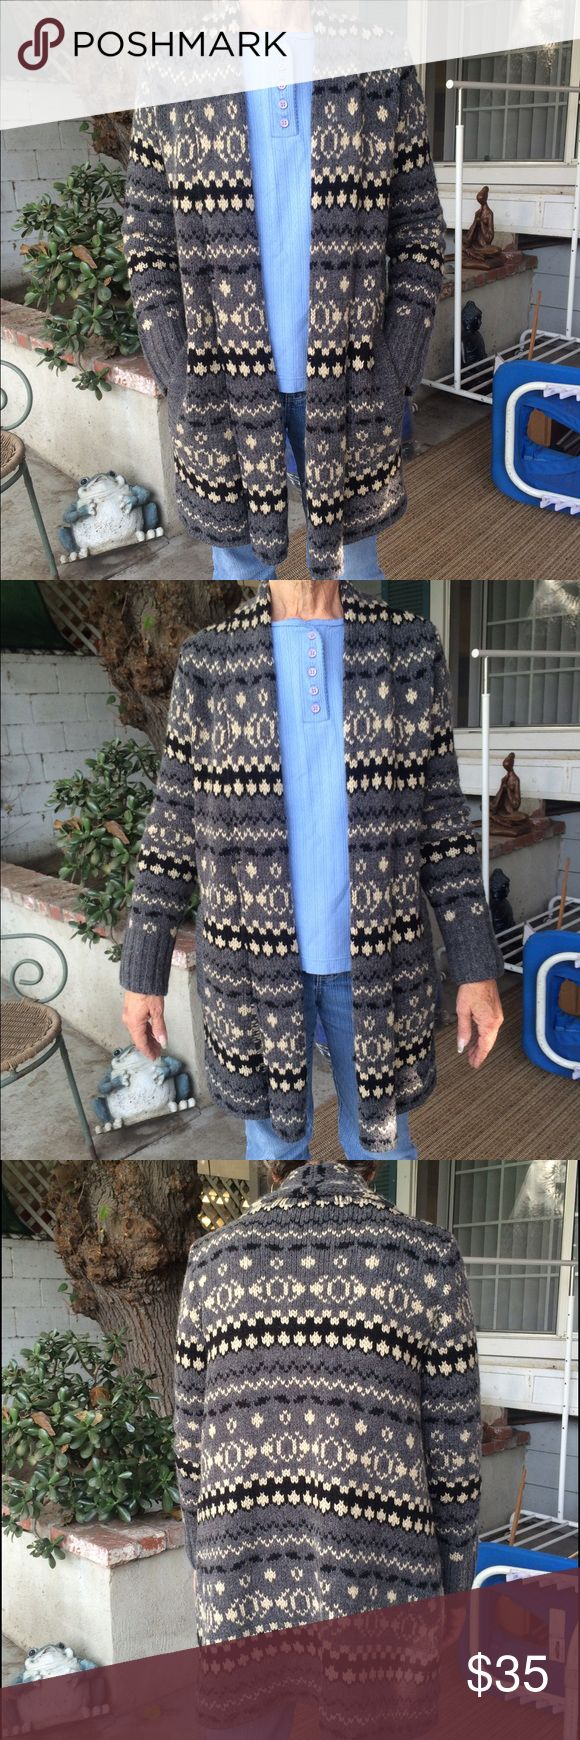 Nice cardigan Tribal Native American like new sweater guest fits size small /m / 6 but tag says medium Charter Club Sweaters Cardigans